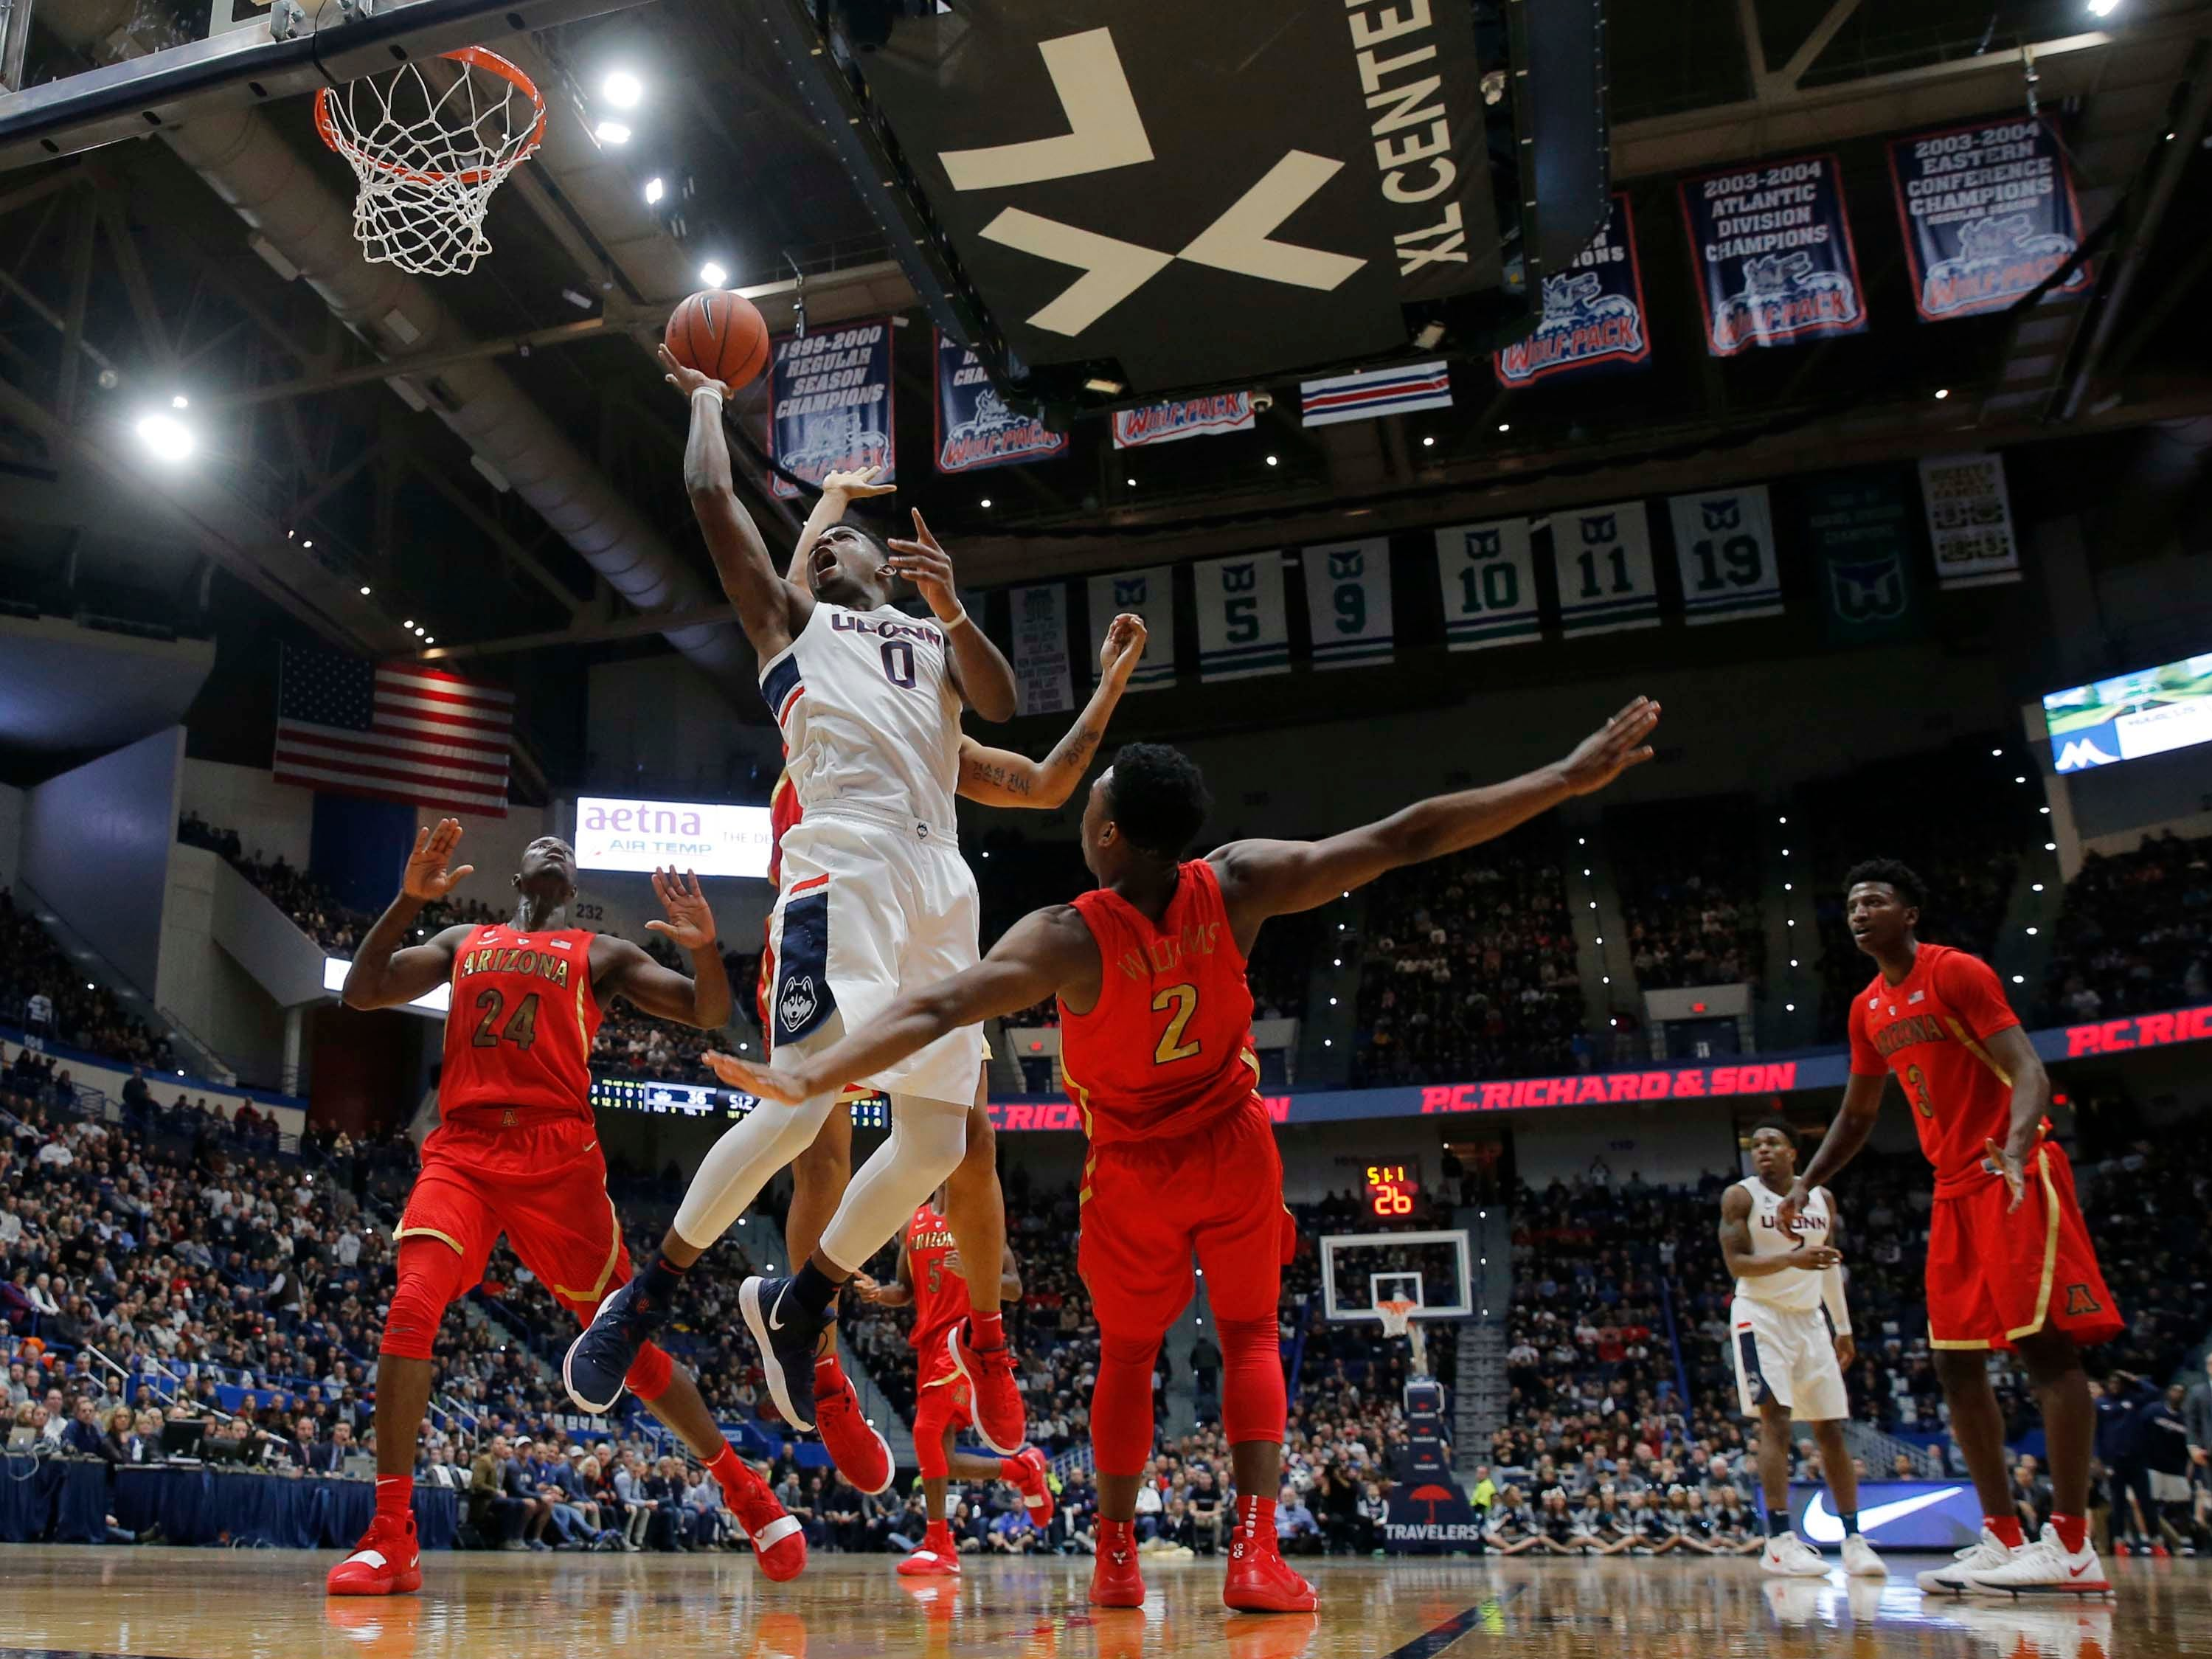 Dec 2, 2018; Storrs, CT, USA; Connecticut Huskies forward Eric Cobb (0) shoots against the Arizona Wildcats in the first half at XL Center. Mandatory Credit: David Butler II-USA TODAY Sports